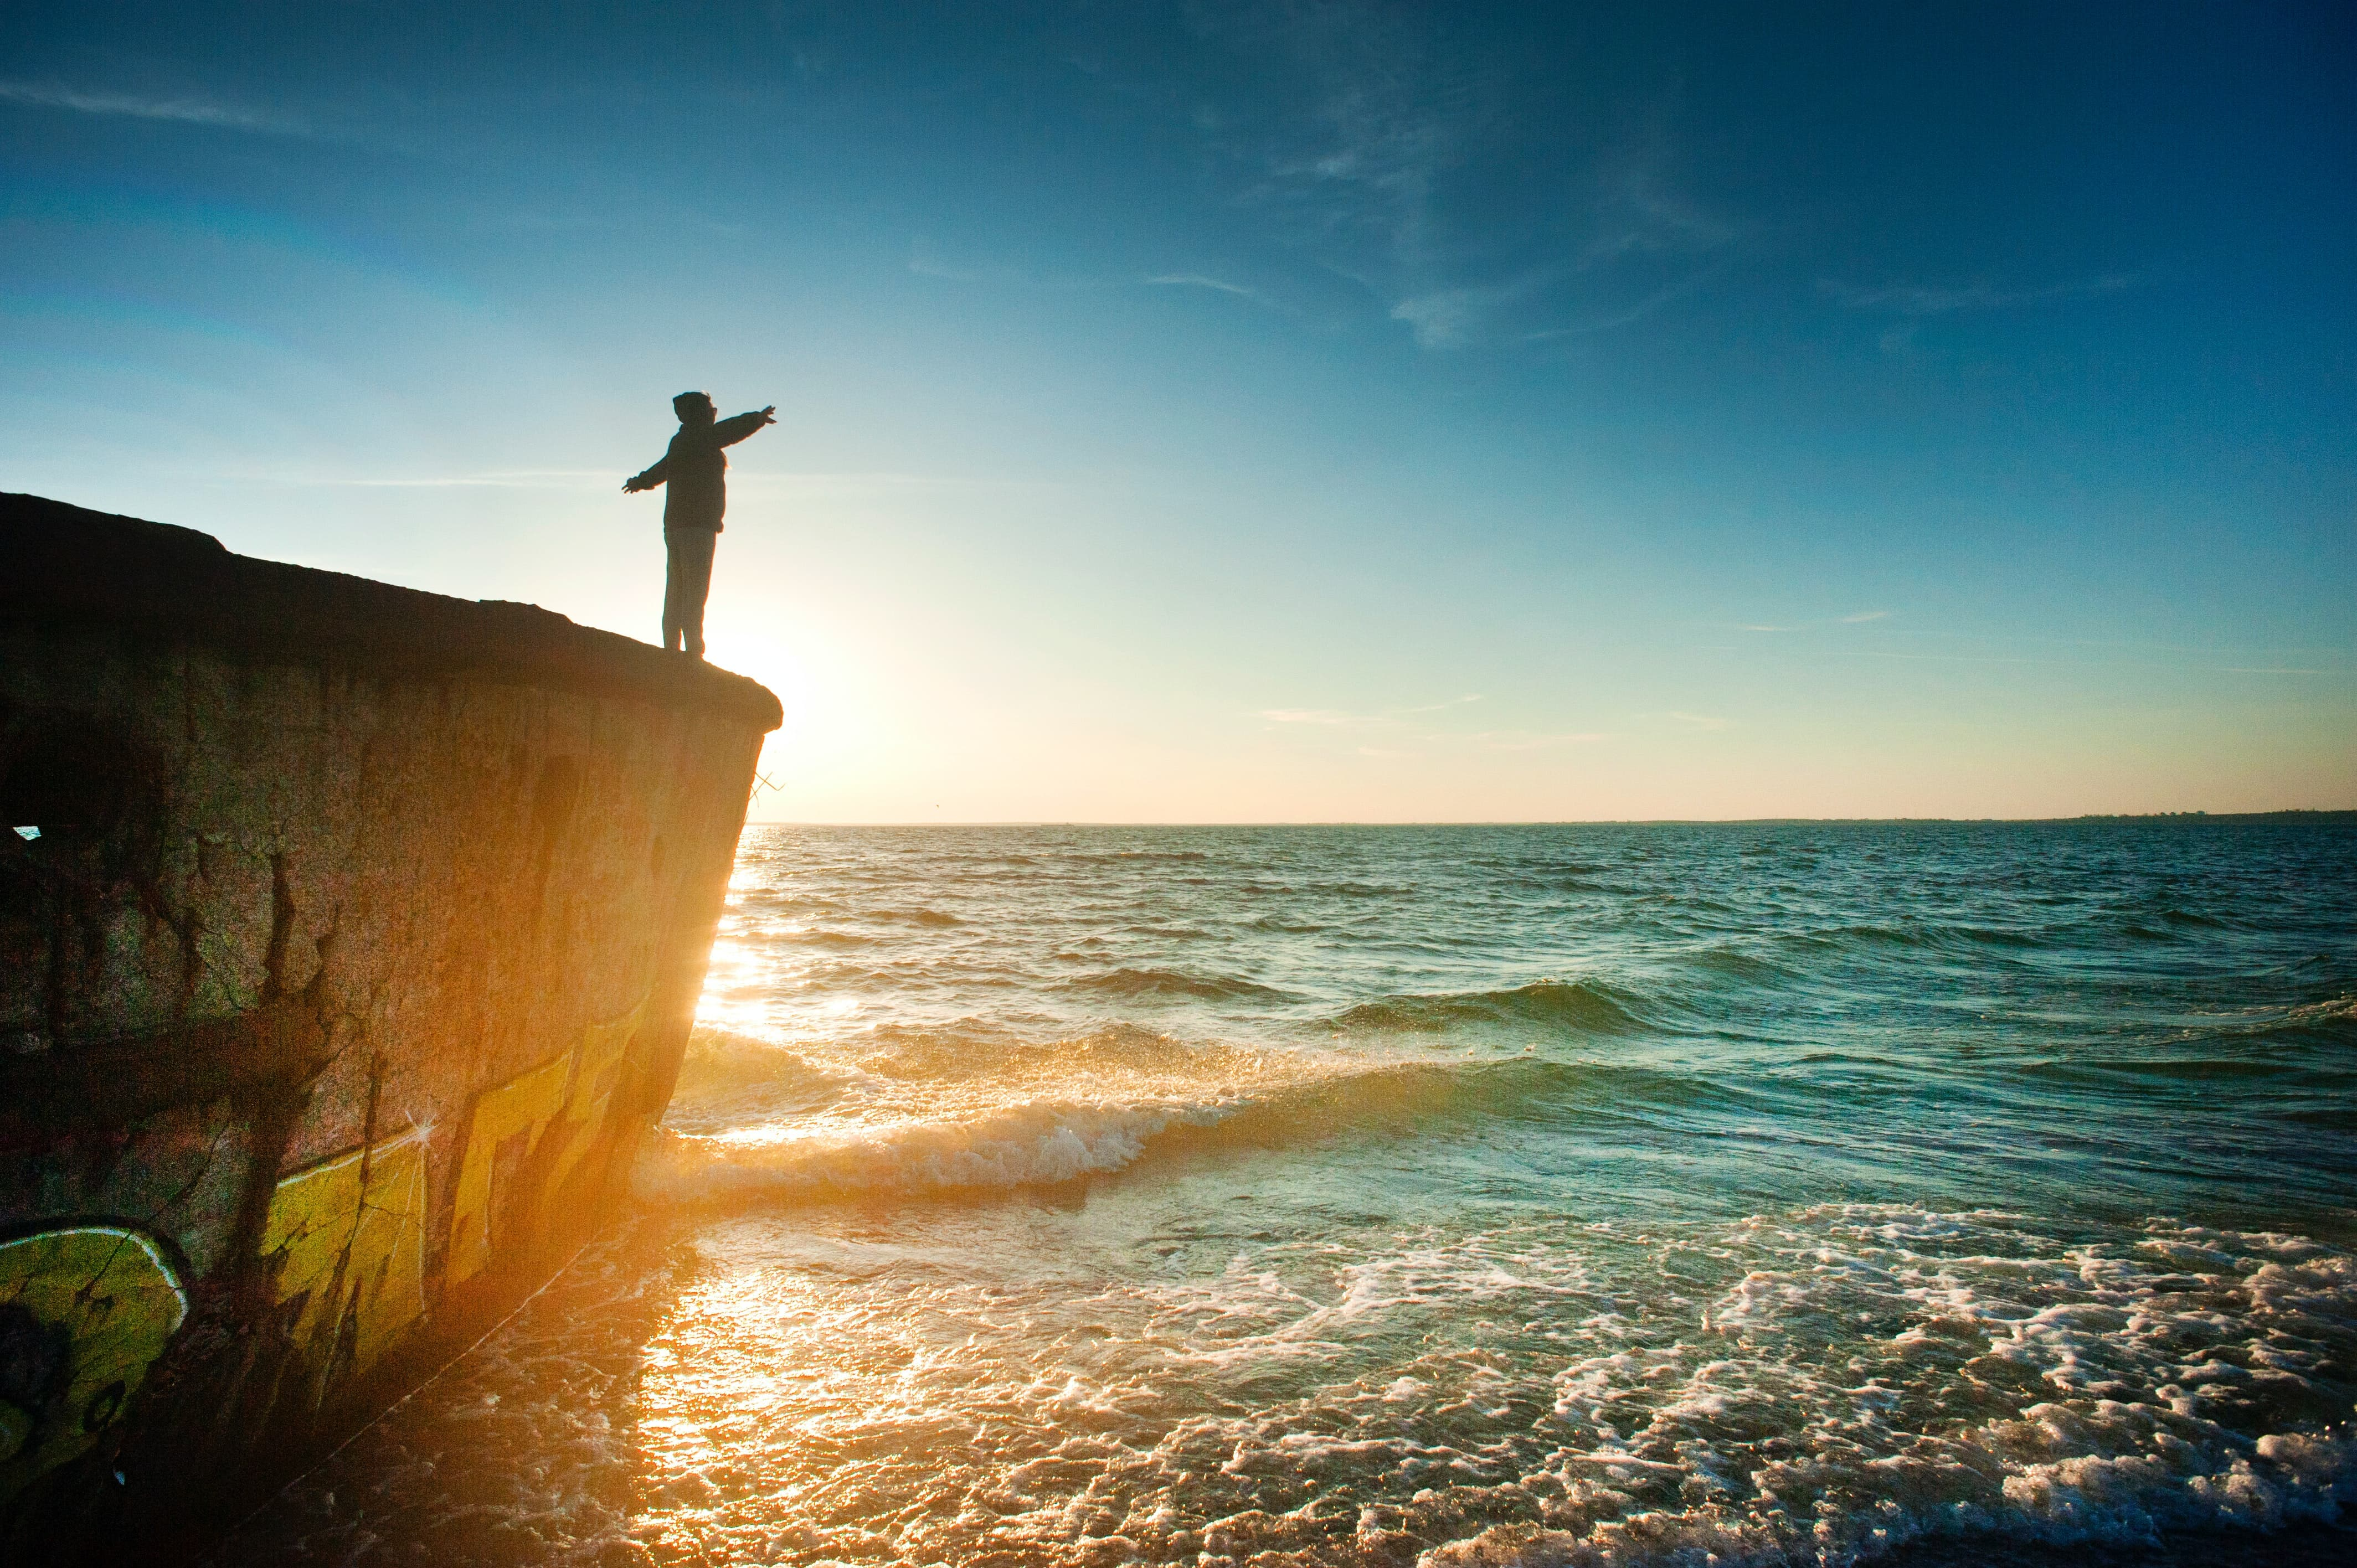 silhouette-of-person-on-cliff-beside-body-of-water-during-1060489 (1)